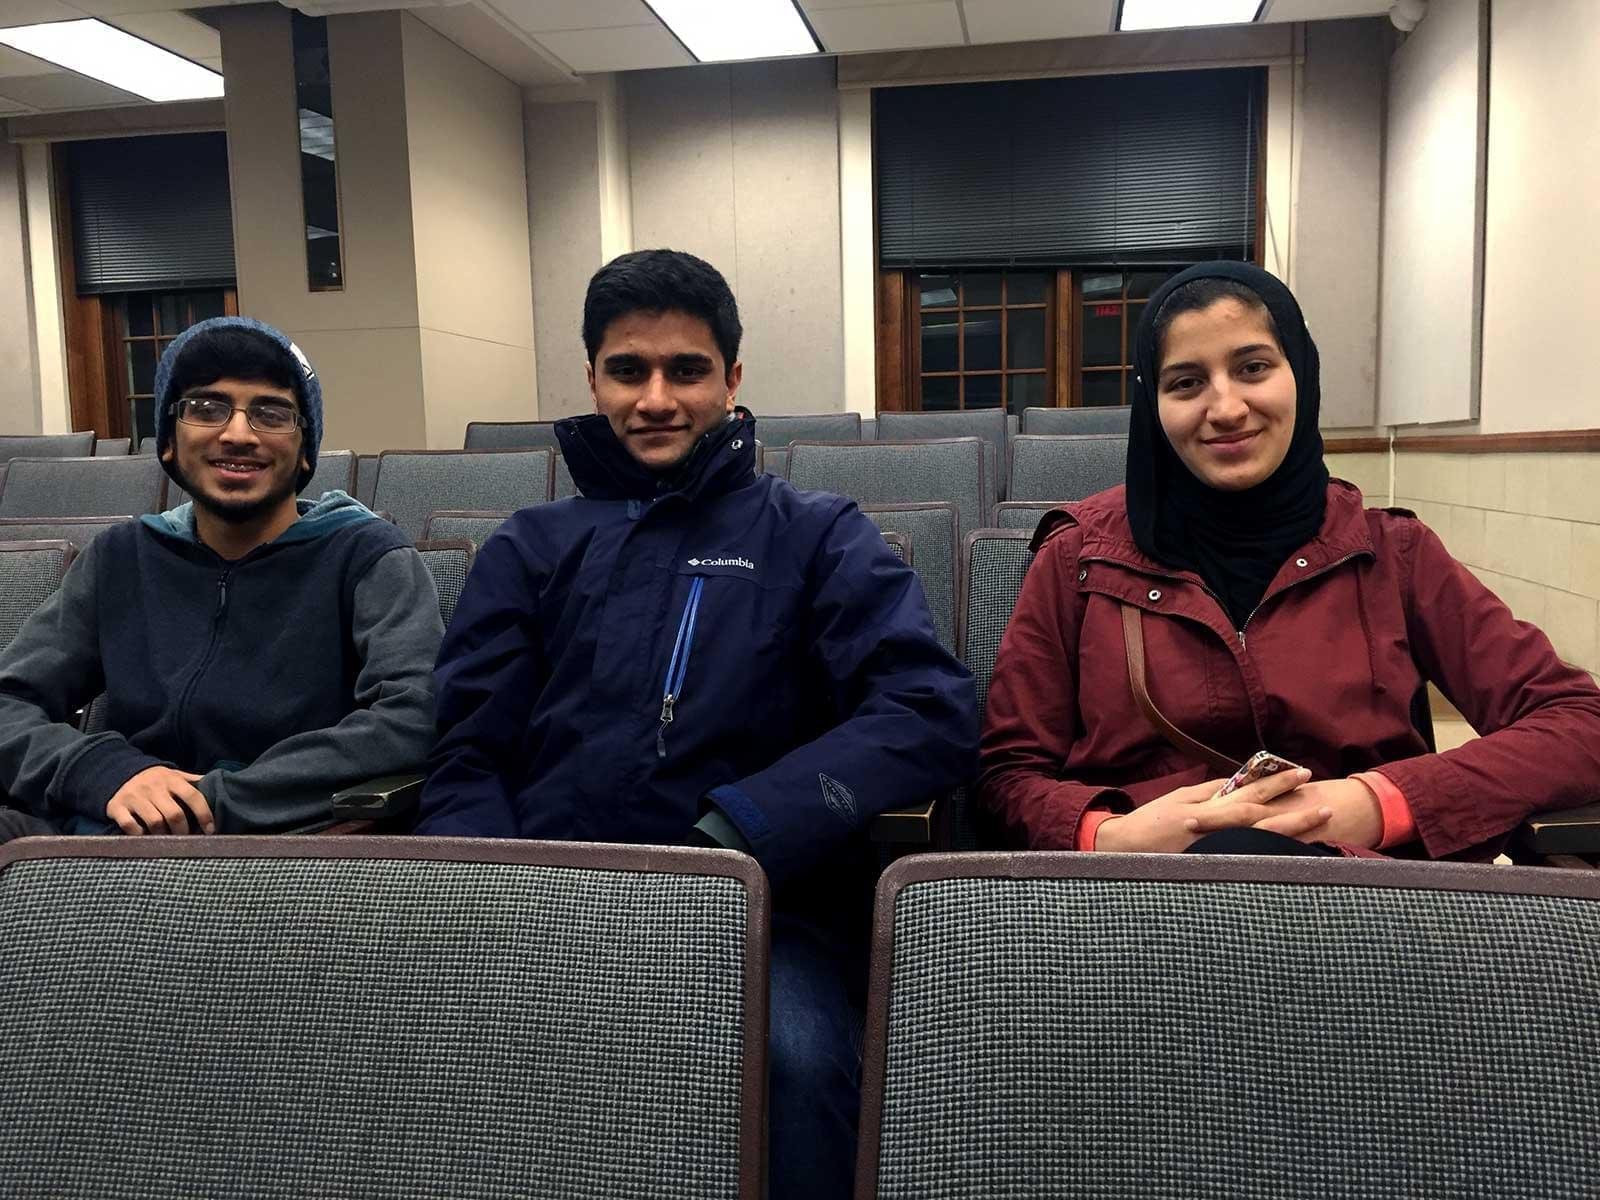 U of I students Ahsan Ali, Bana Zayyad and Mudassir Ali serve on the executive board of the Muslim Students Association on the Urbana campus.